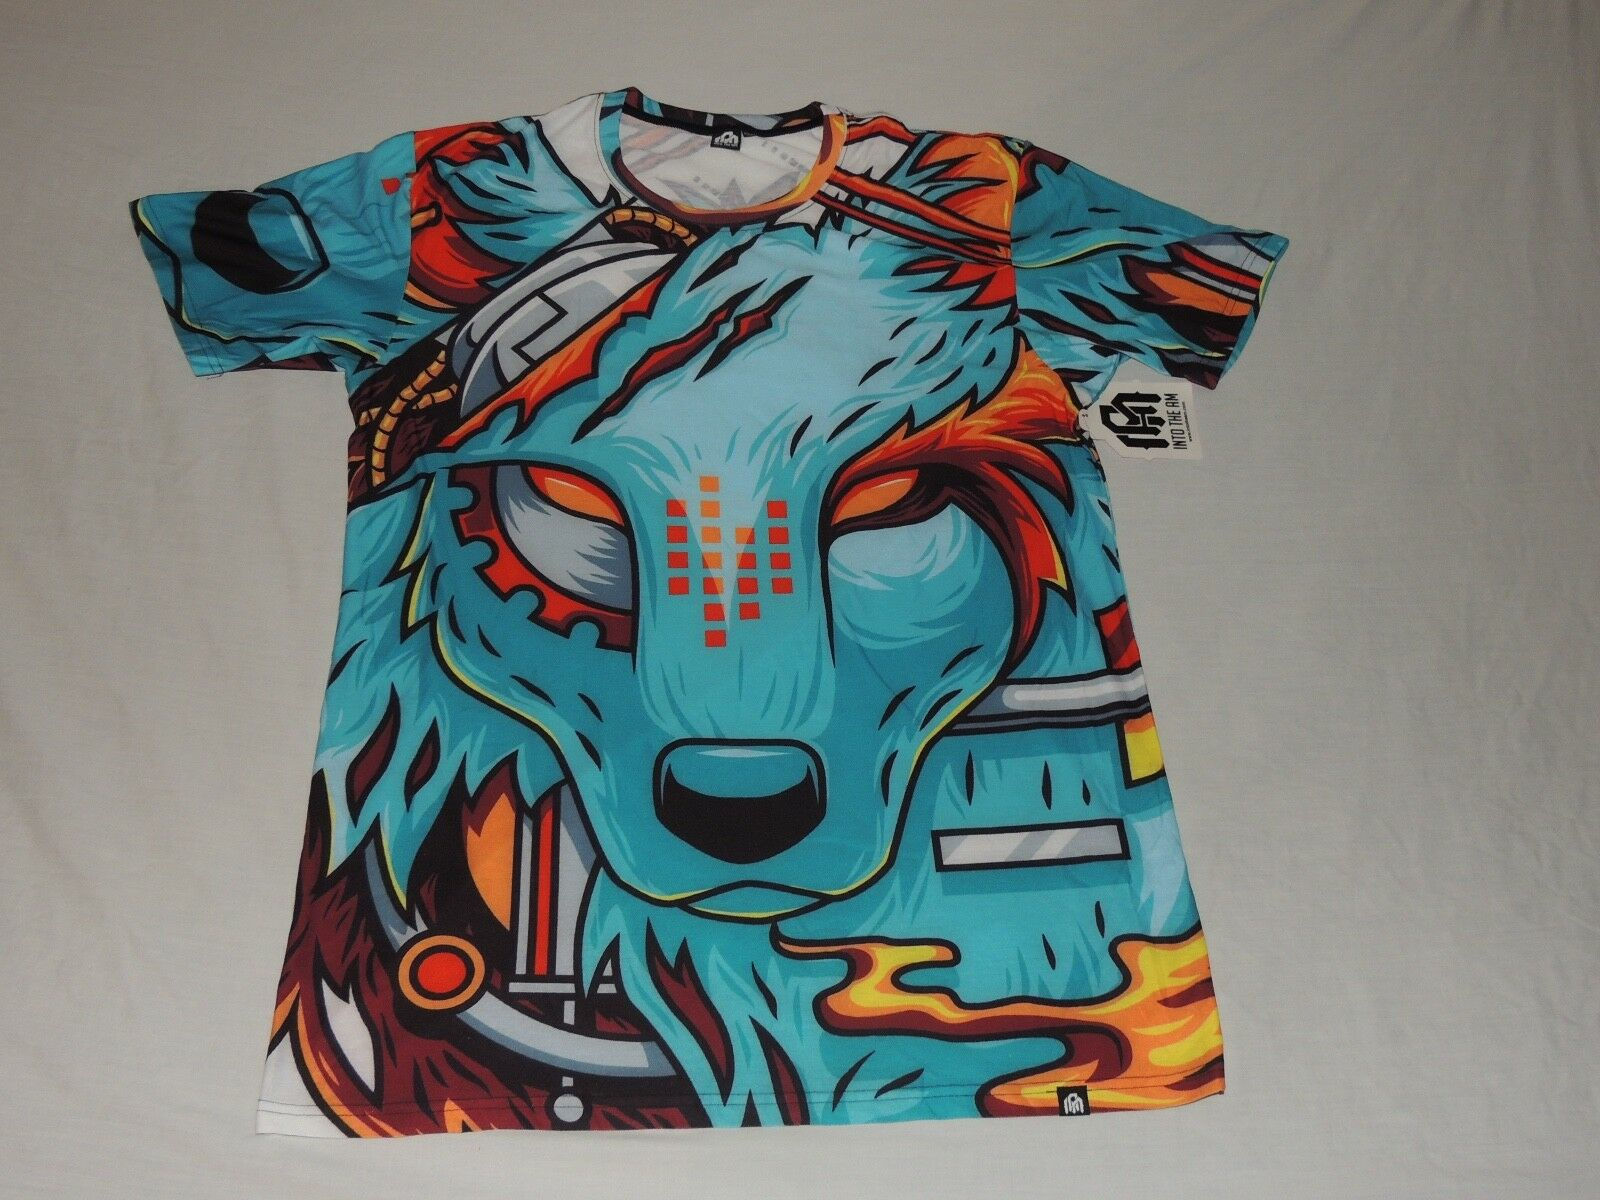 DIGITAL ARCTIC WOLF SHIRT - 3XLT - INTO THE AM - LIMITED EDITION RAVE SHIRT TALL